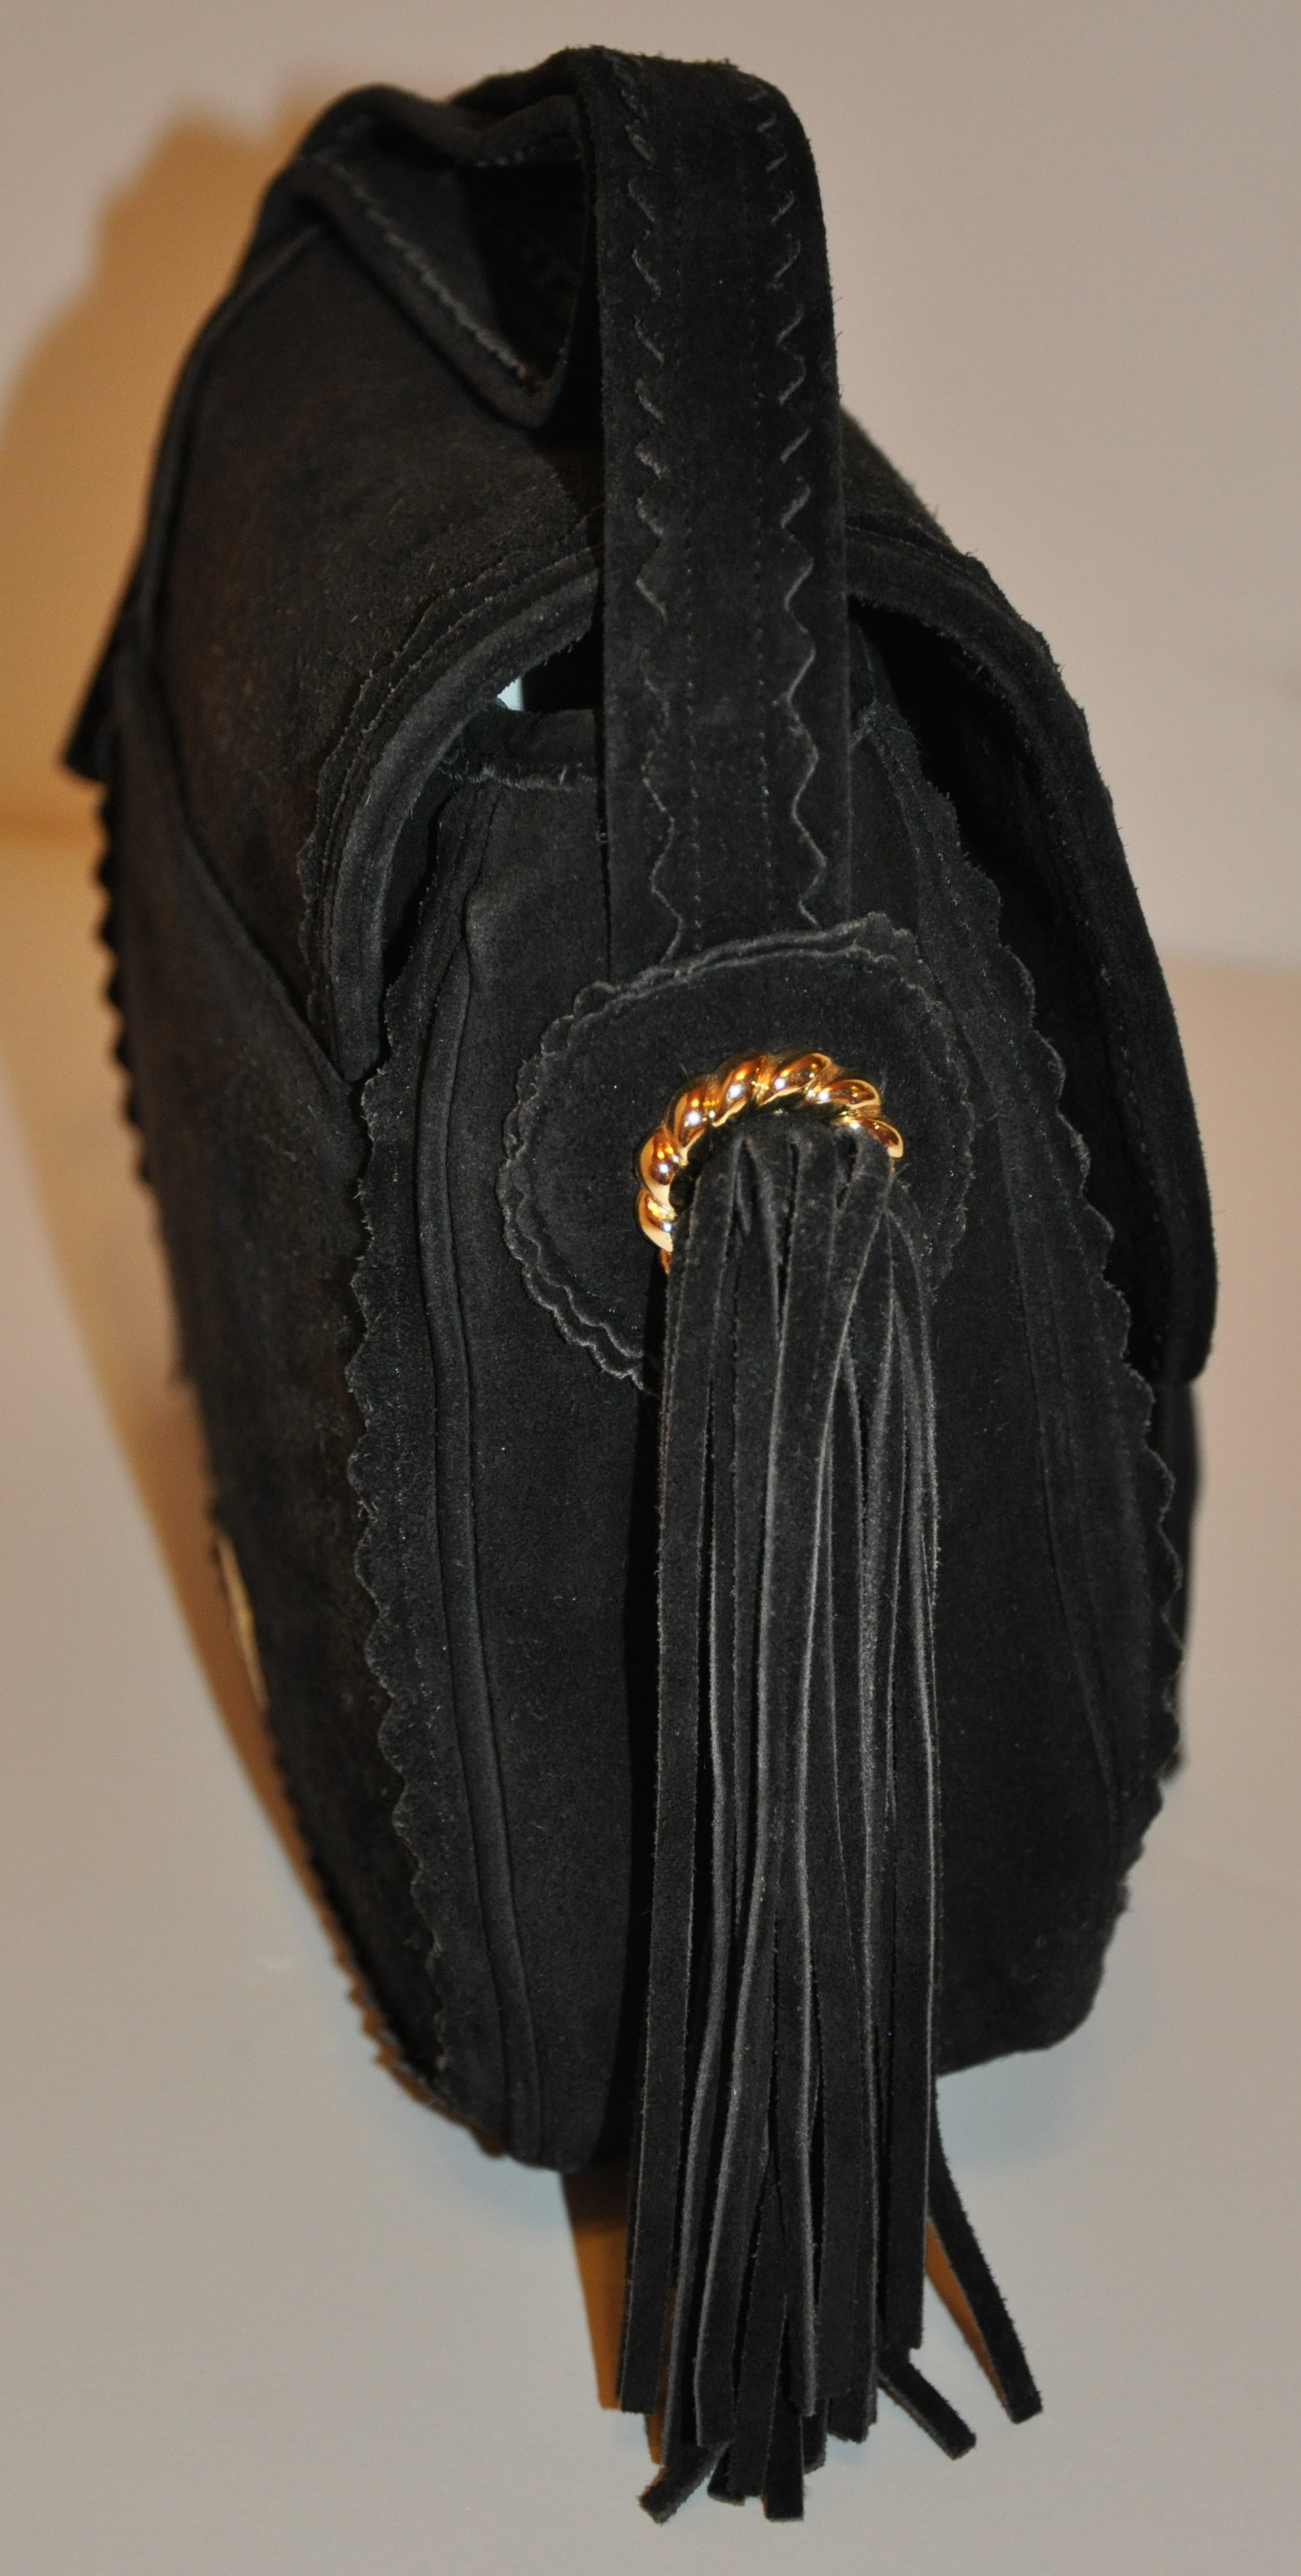 Moschino Midnight Black Lambskin Suede With Tassels Accent Shoulder Bag D5wgnv1